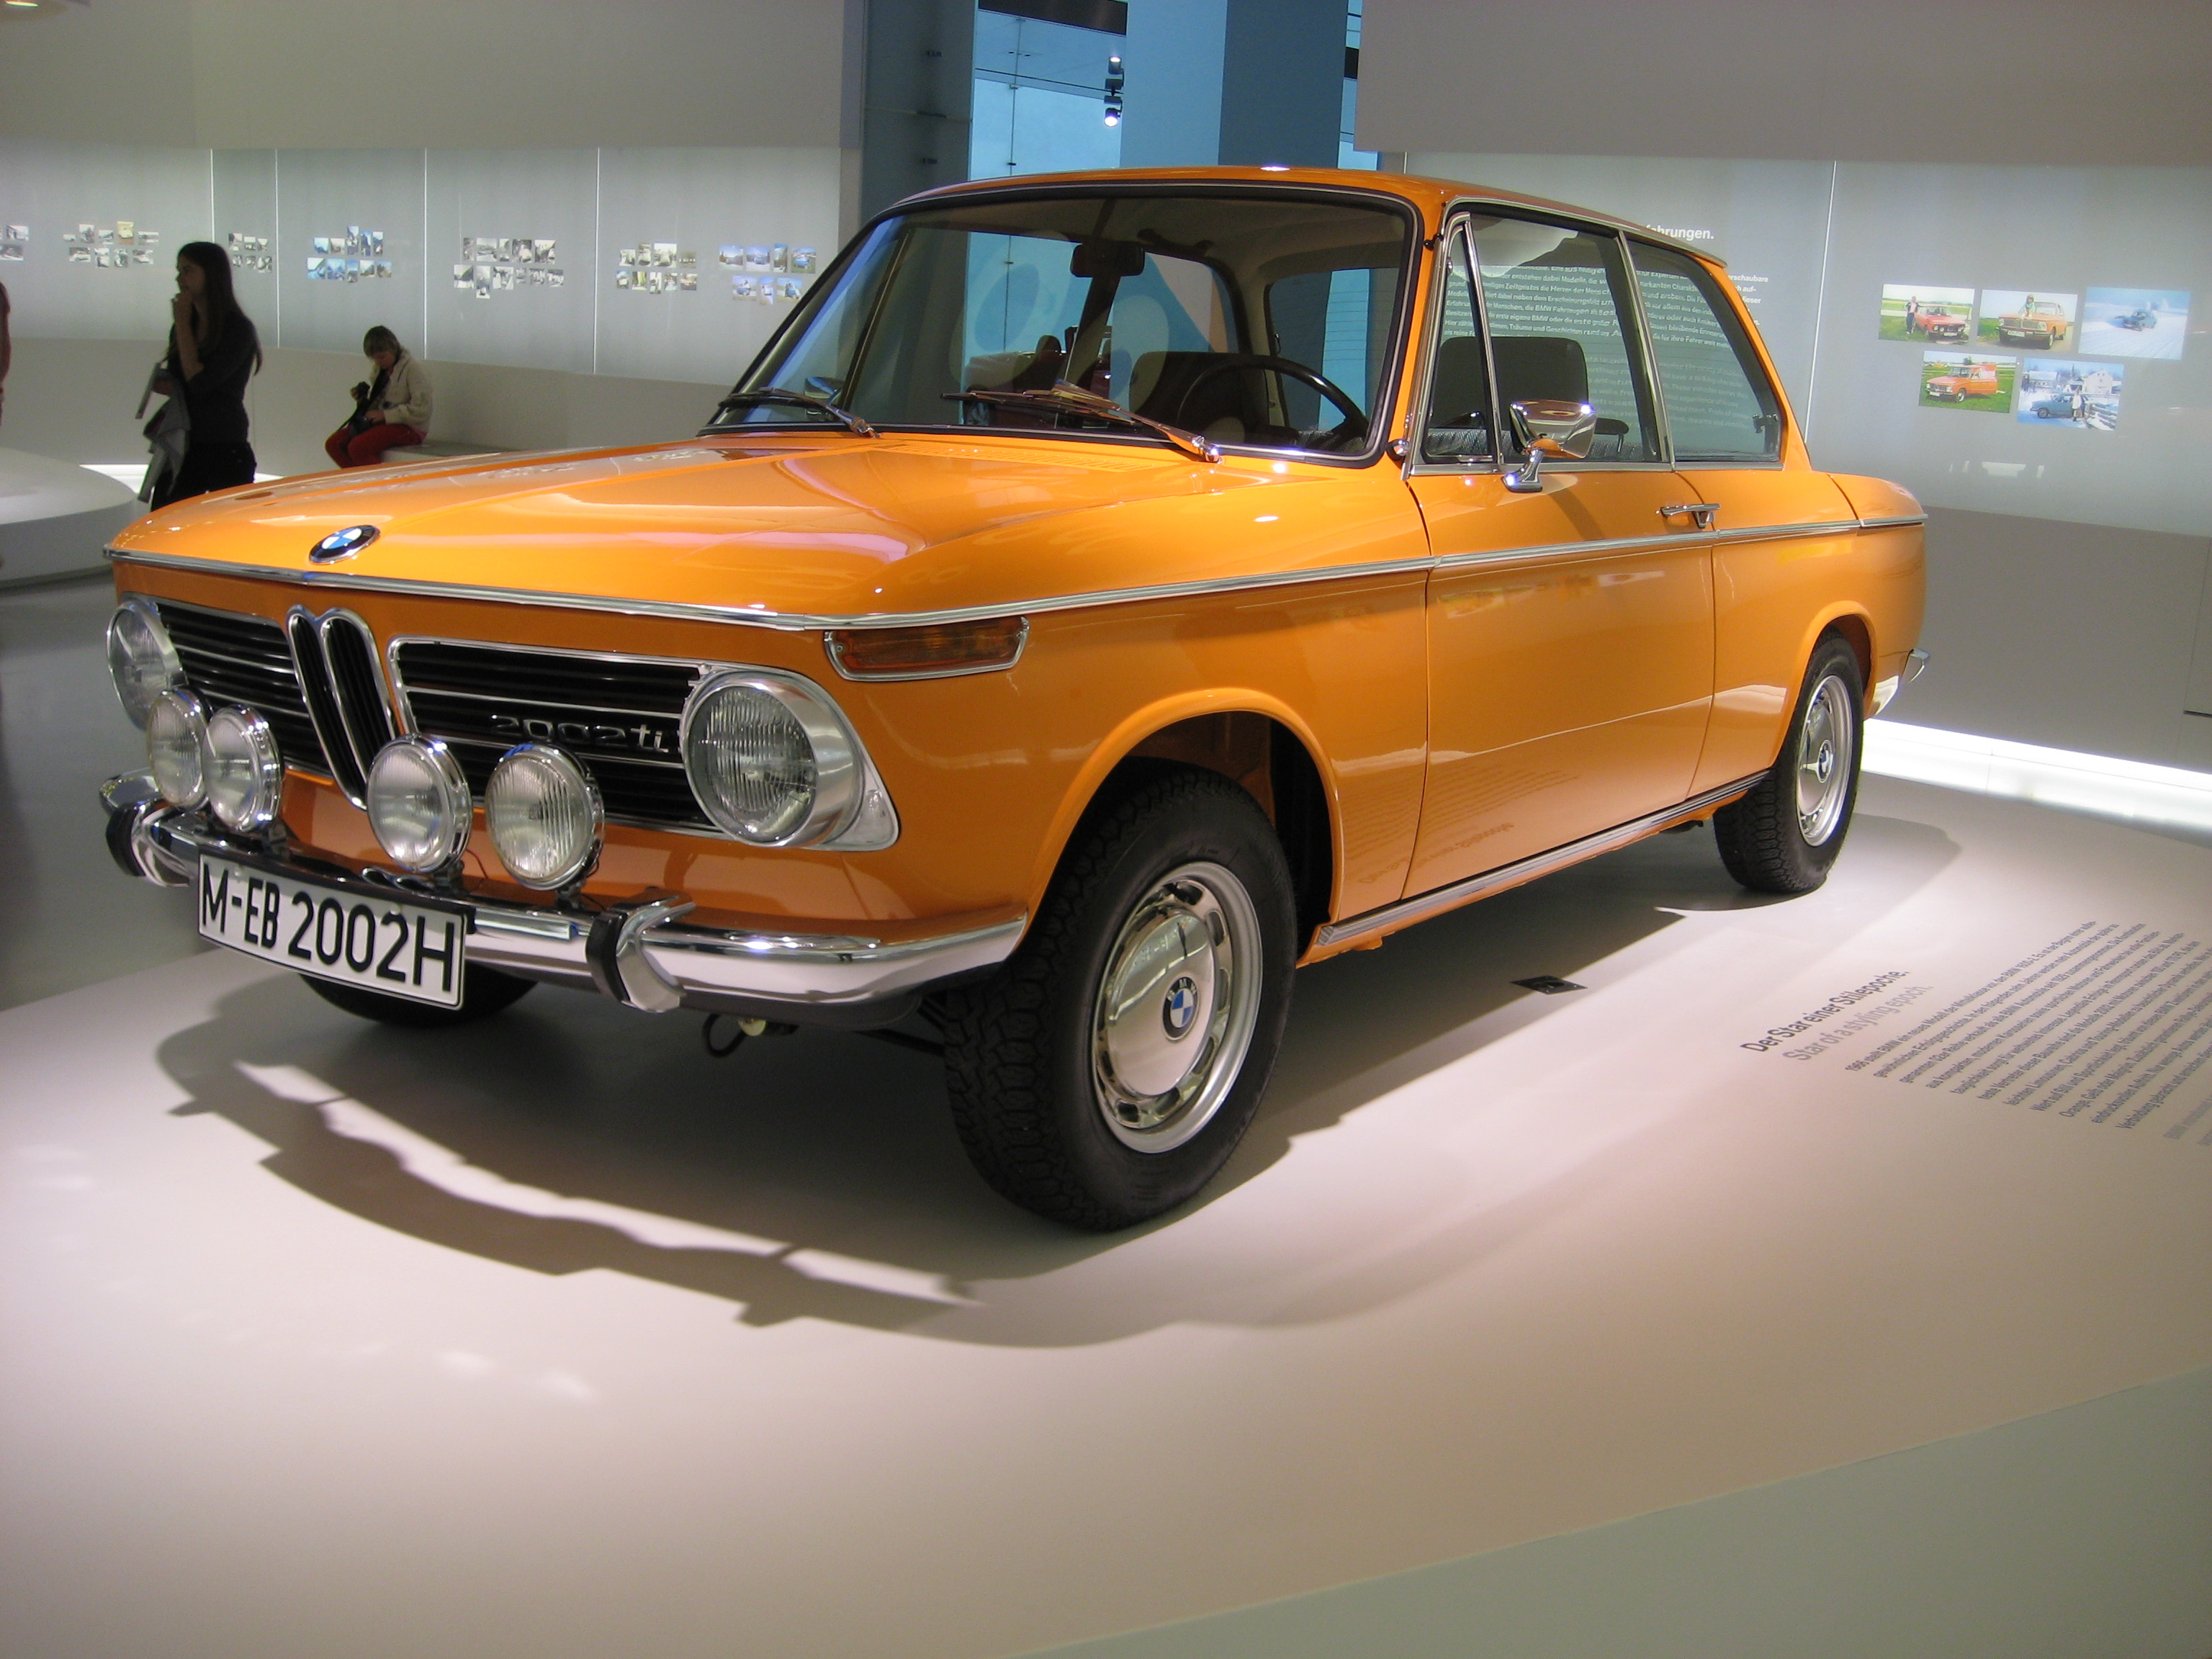 bmw 2002 the first sport sedan is automatic or manual better for racing is automatic or manual better in mario kart wii